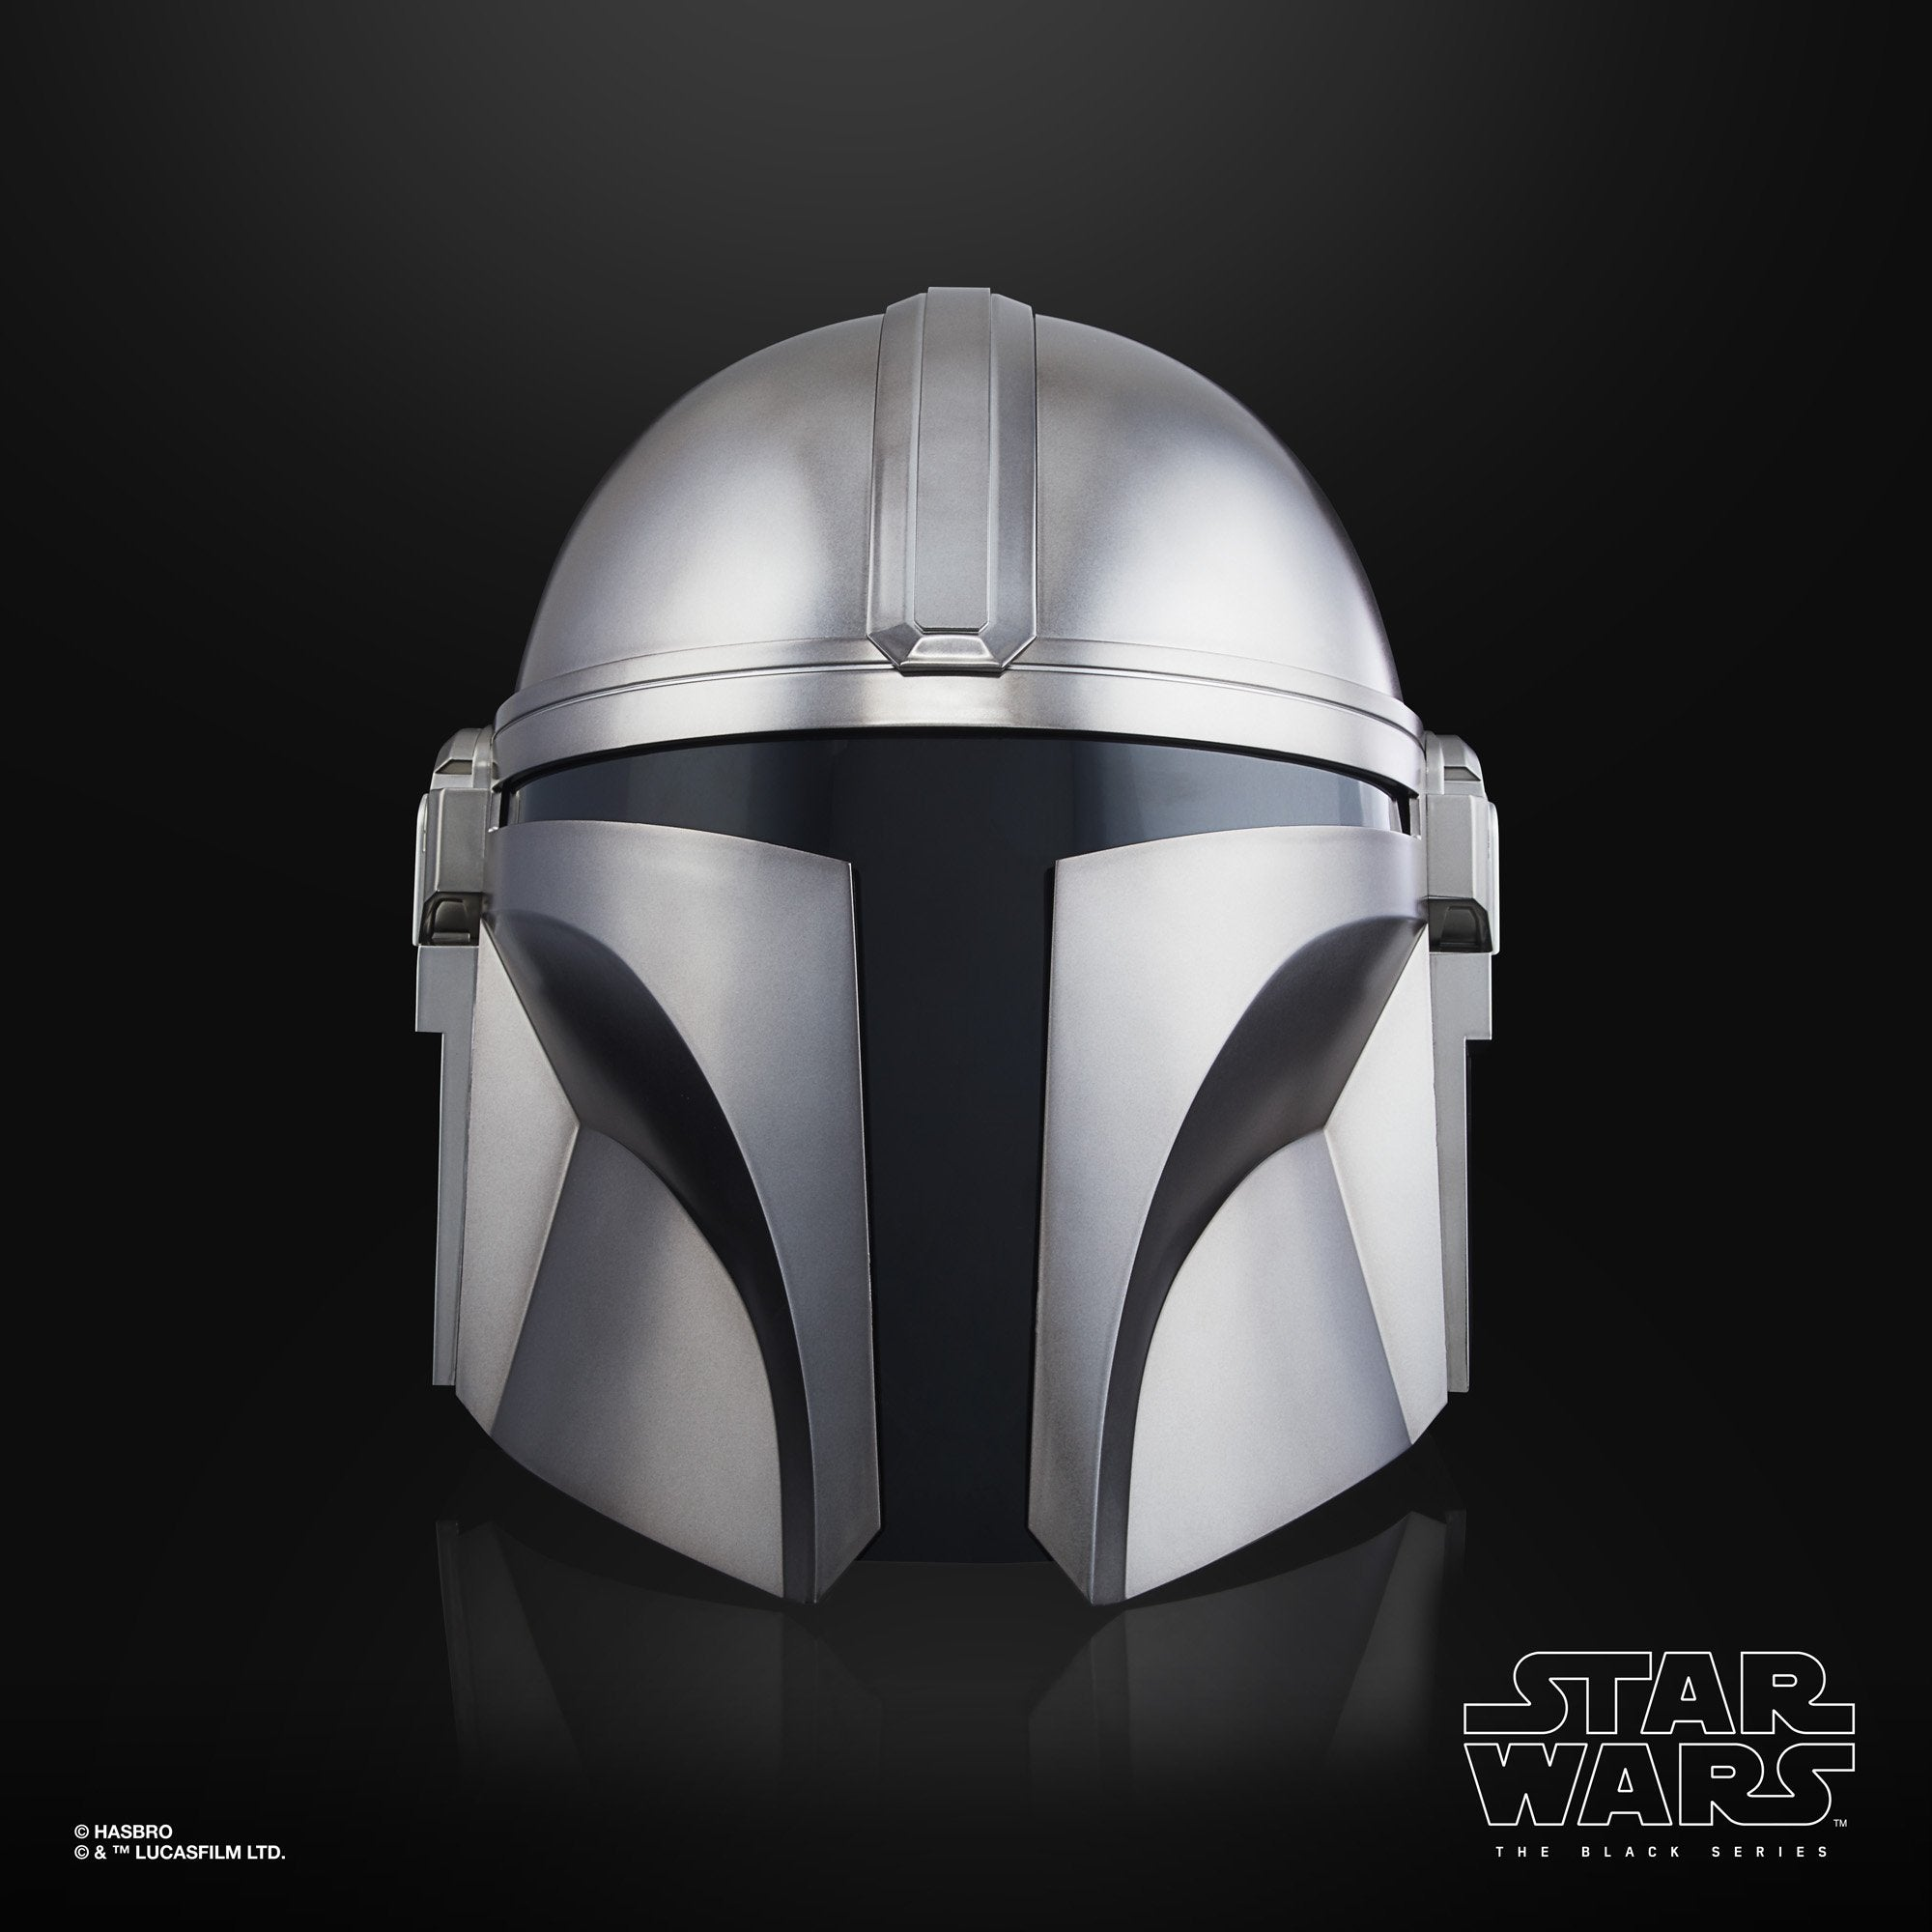 Hasbro - Star Wars: The Black Series - Wearable Premium Electronic The Mandalorian Helmet (1/1 Scale)